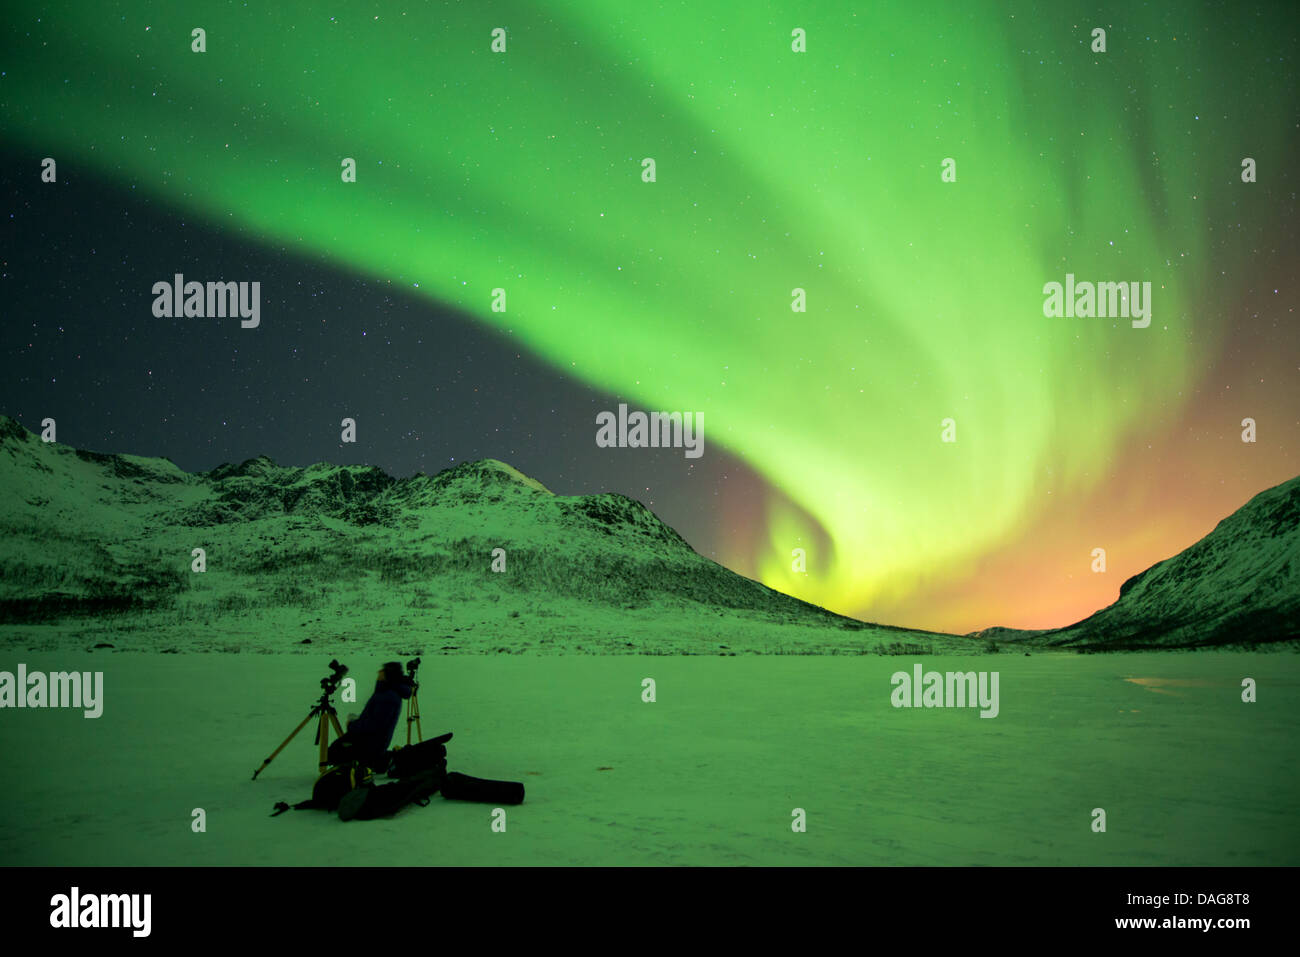 aurora curtain in front of the starry sky over snow-covered valley with a nature photographer's equipment in - Stock Image